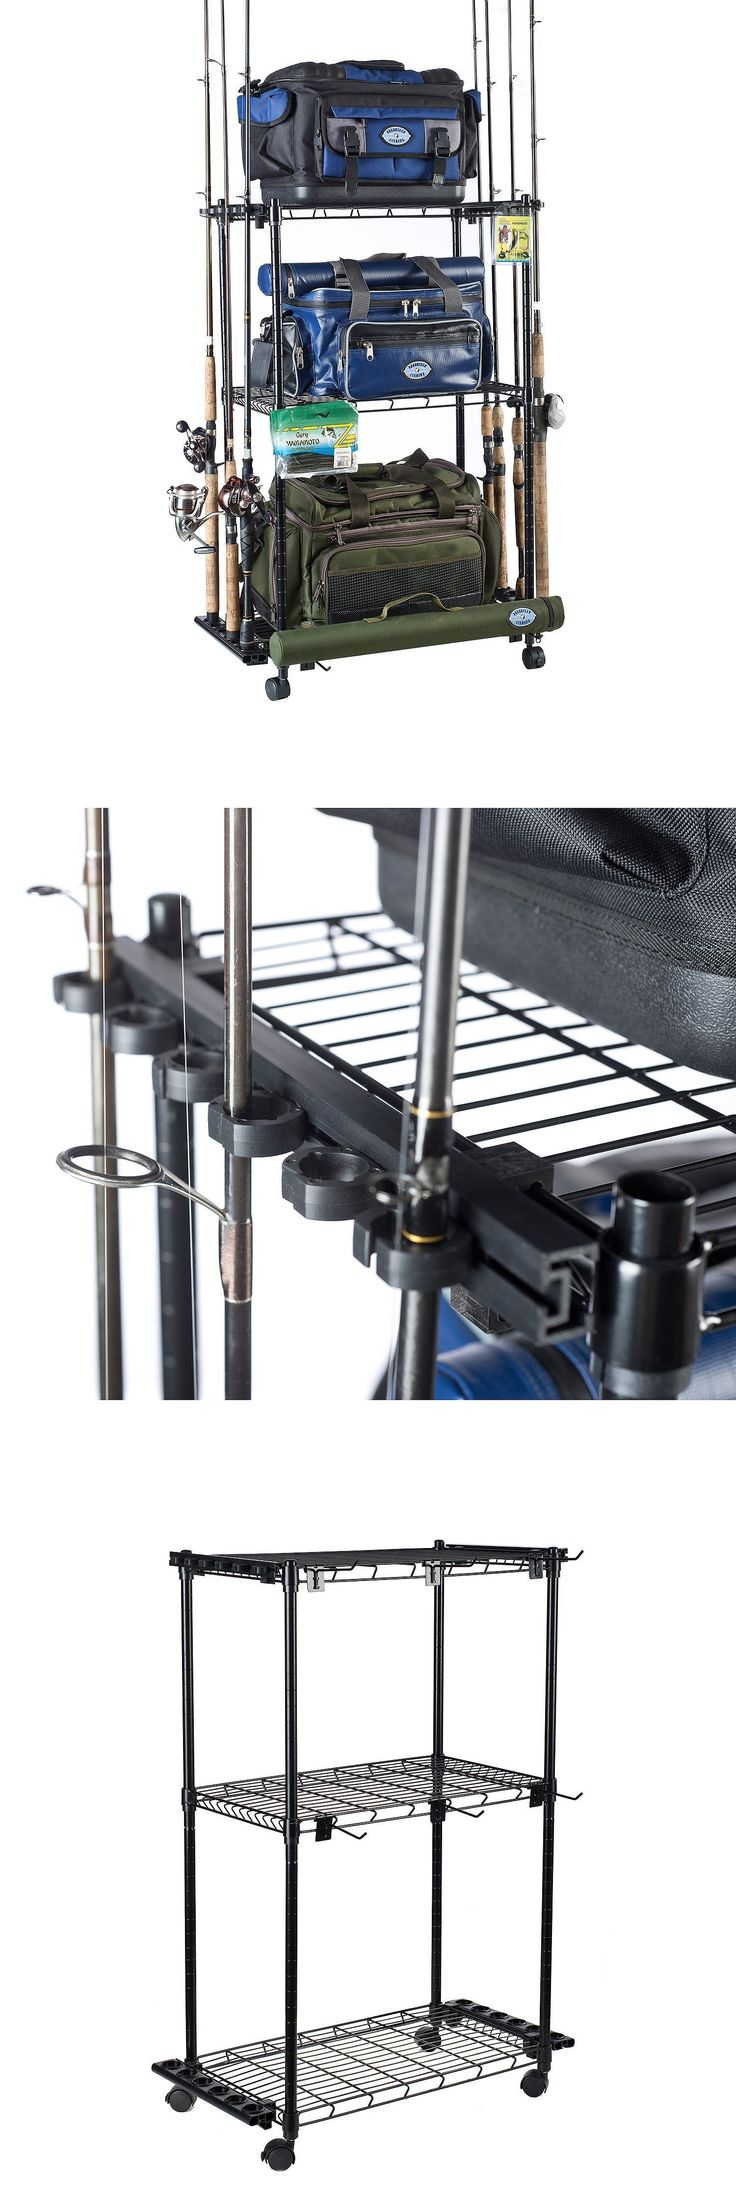 Rod Cases Tubes and Racks 81473: Fishing Rod And Reel Tackle Storage Organizer Trolley Adjustable 12 Rods Wheels -> BUY IT NOW ONLY: $74.95 on eBay!